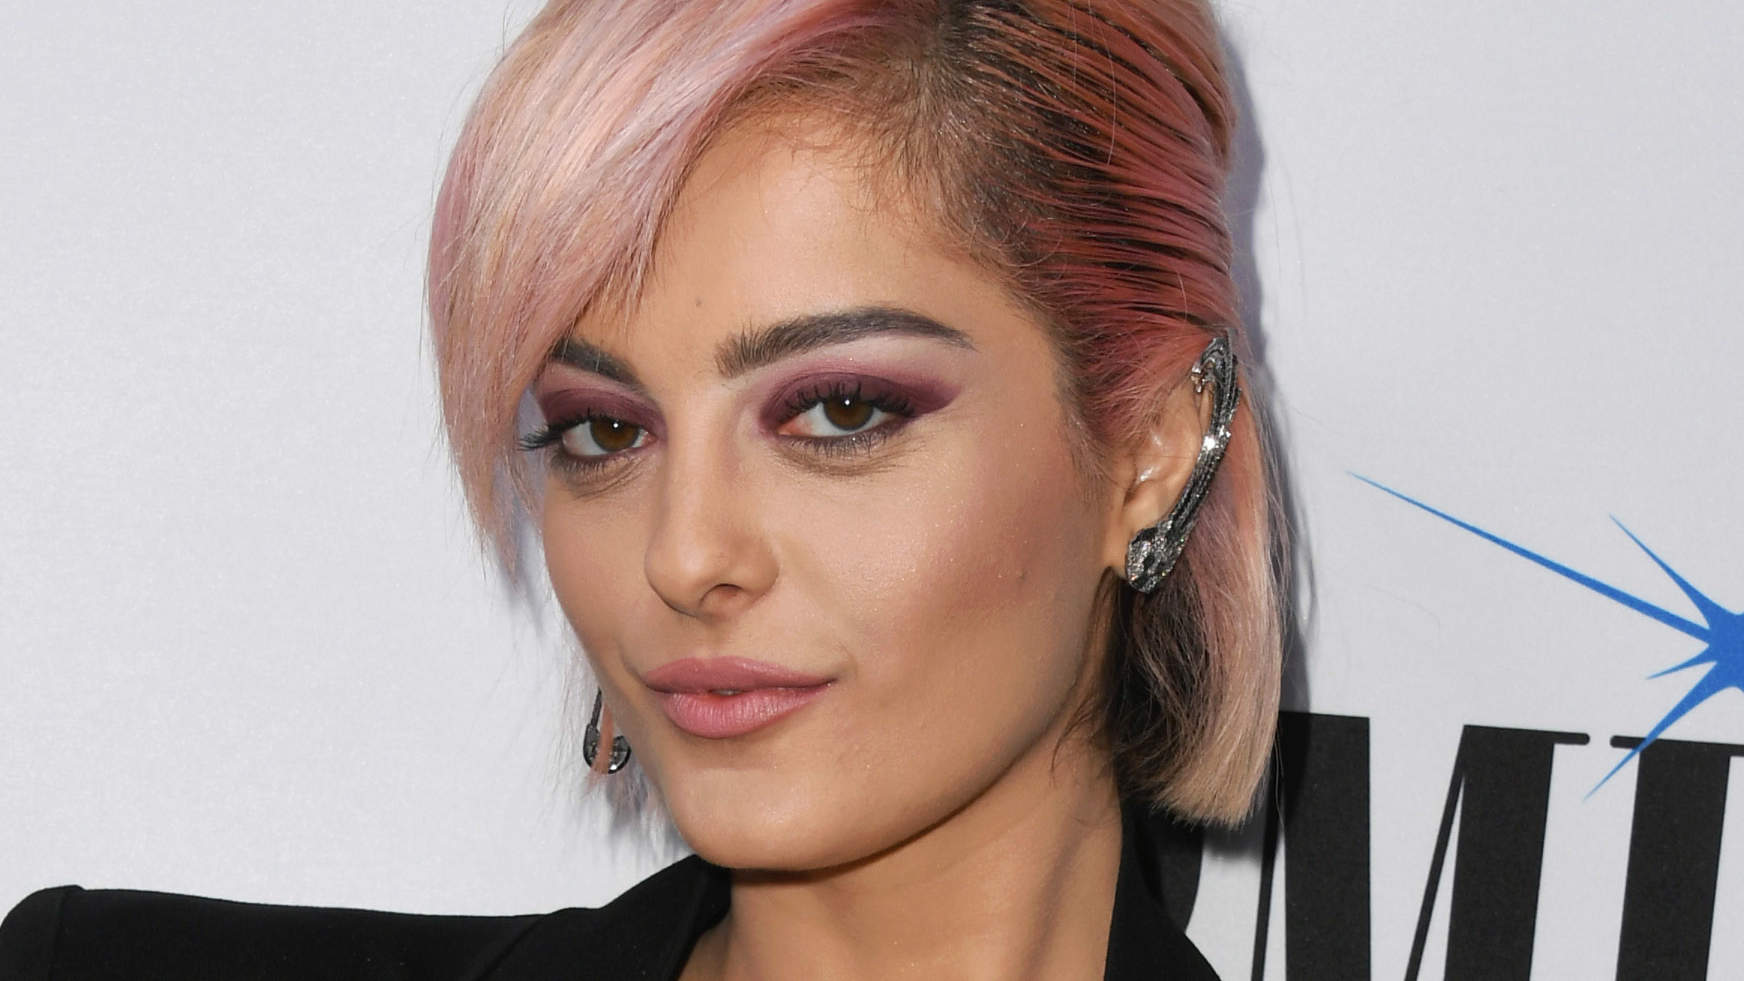 Bebe Rexha's Unretouched Bikini Photo Is All the Summer Inspo You Need